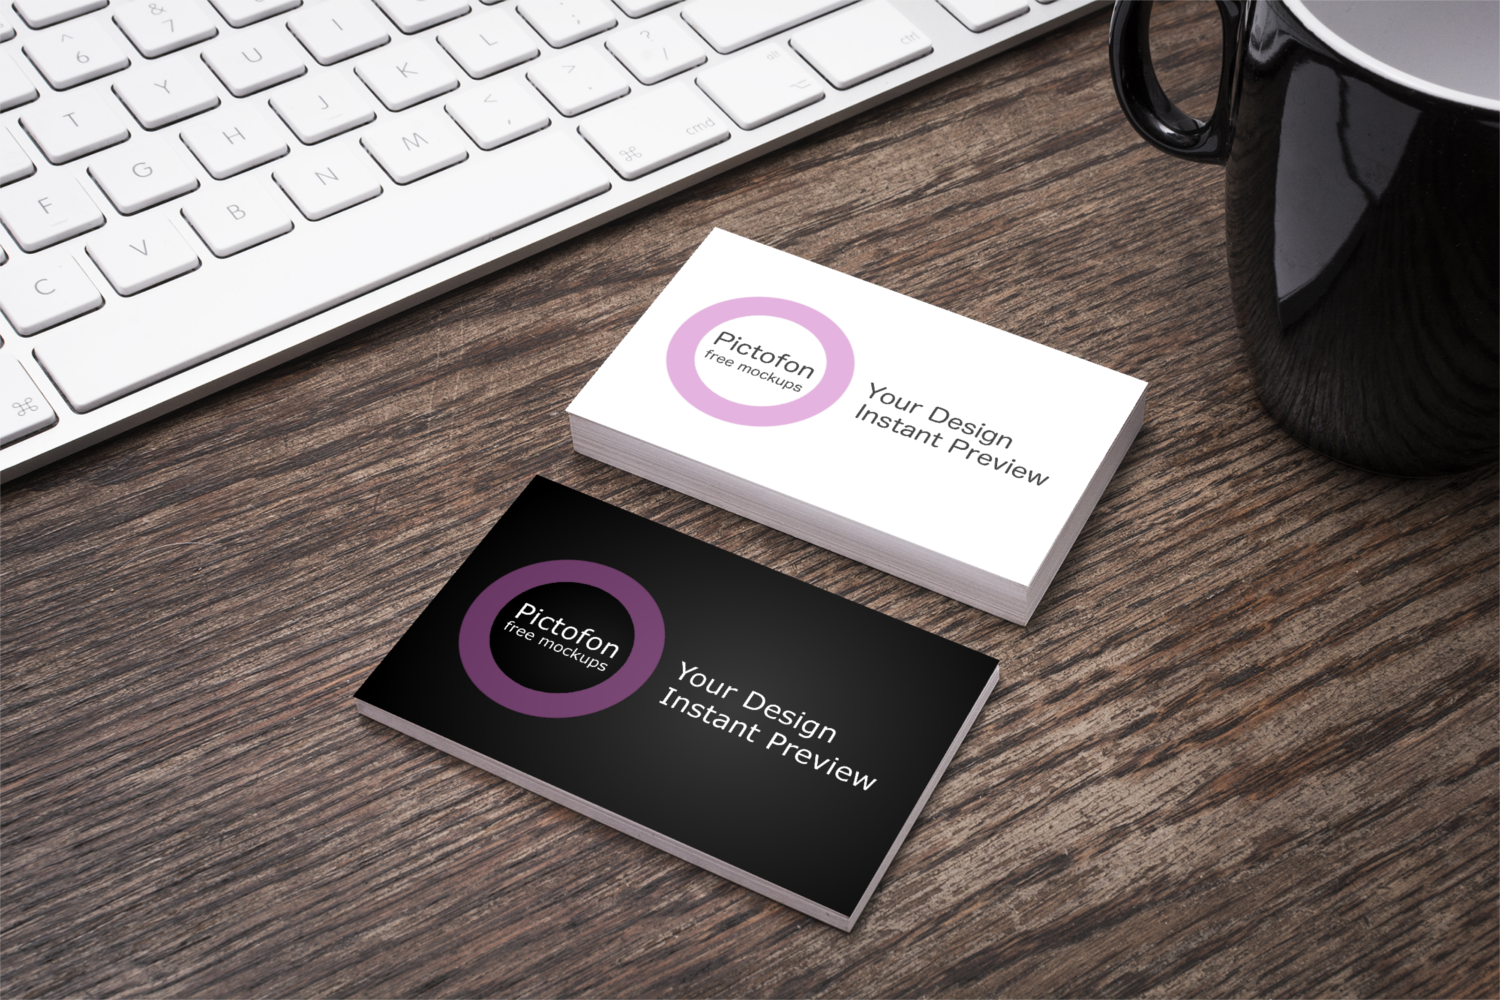 2 new business card mockups with instant preview of your